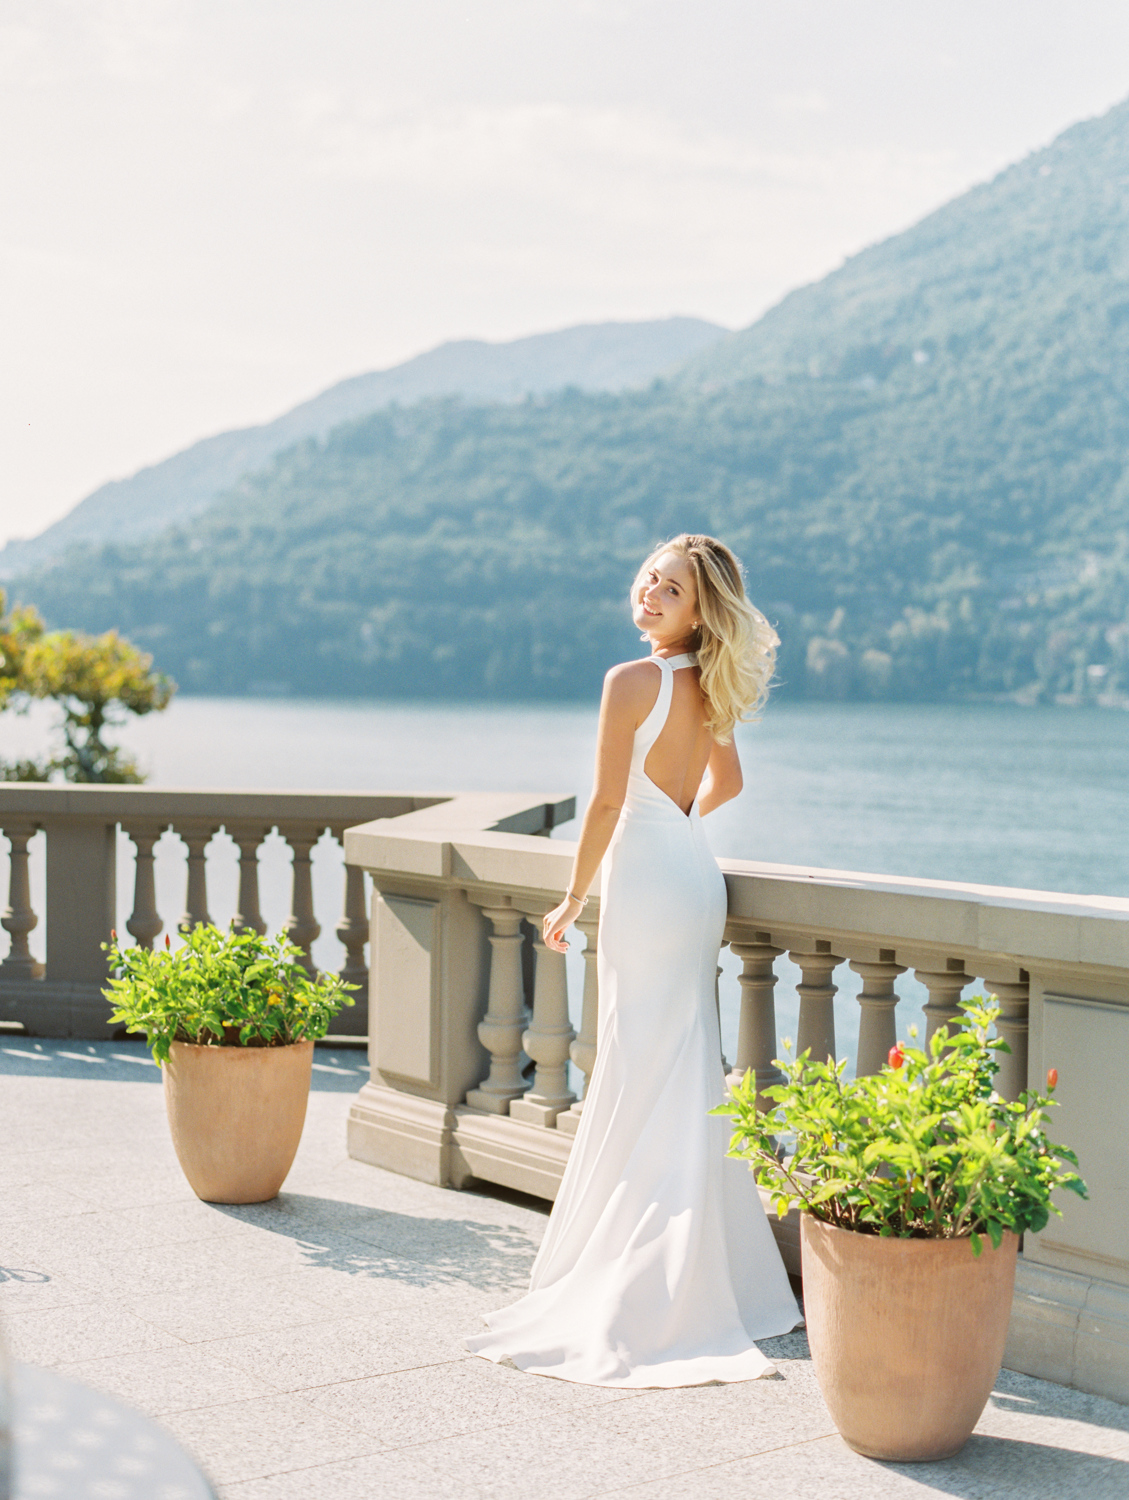 Julia Kaptelova photography wedding, north italy, lake como, italy, como lake